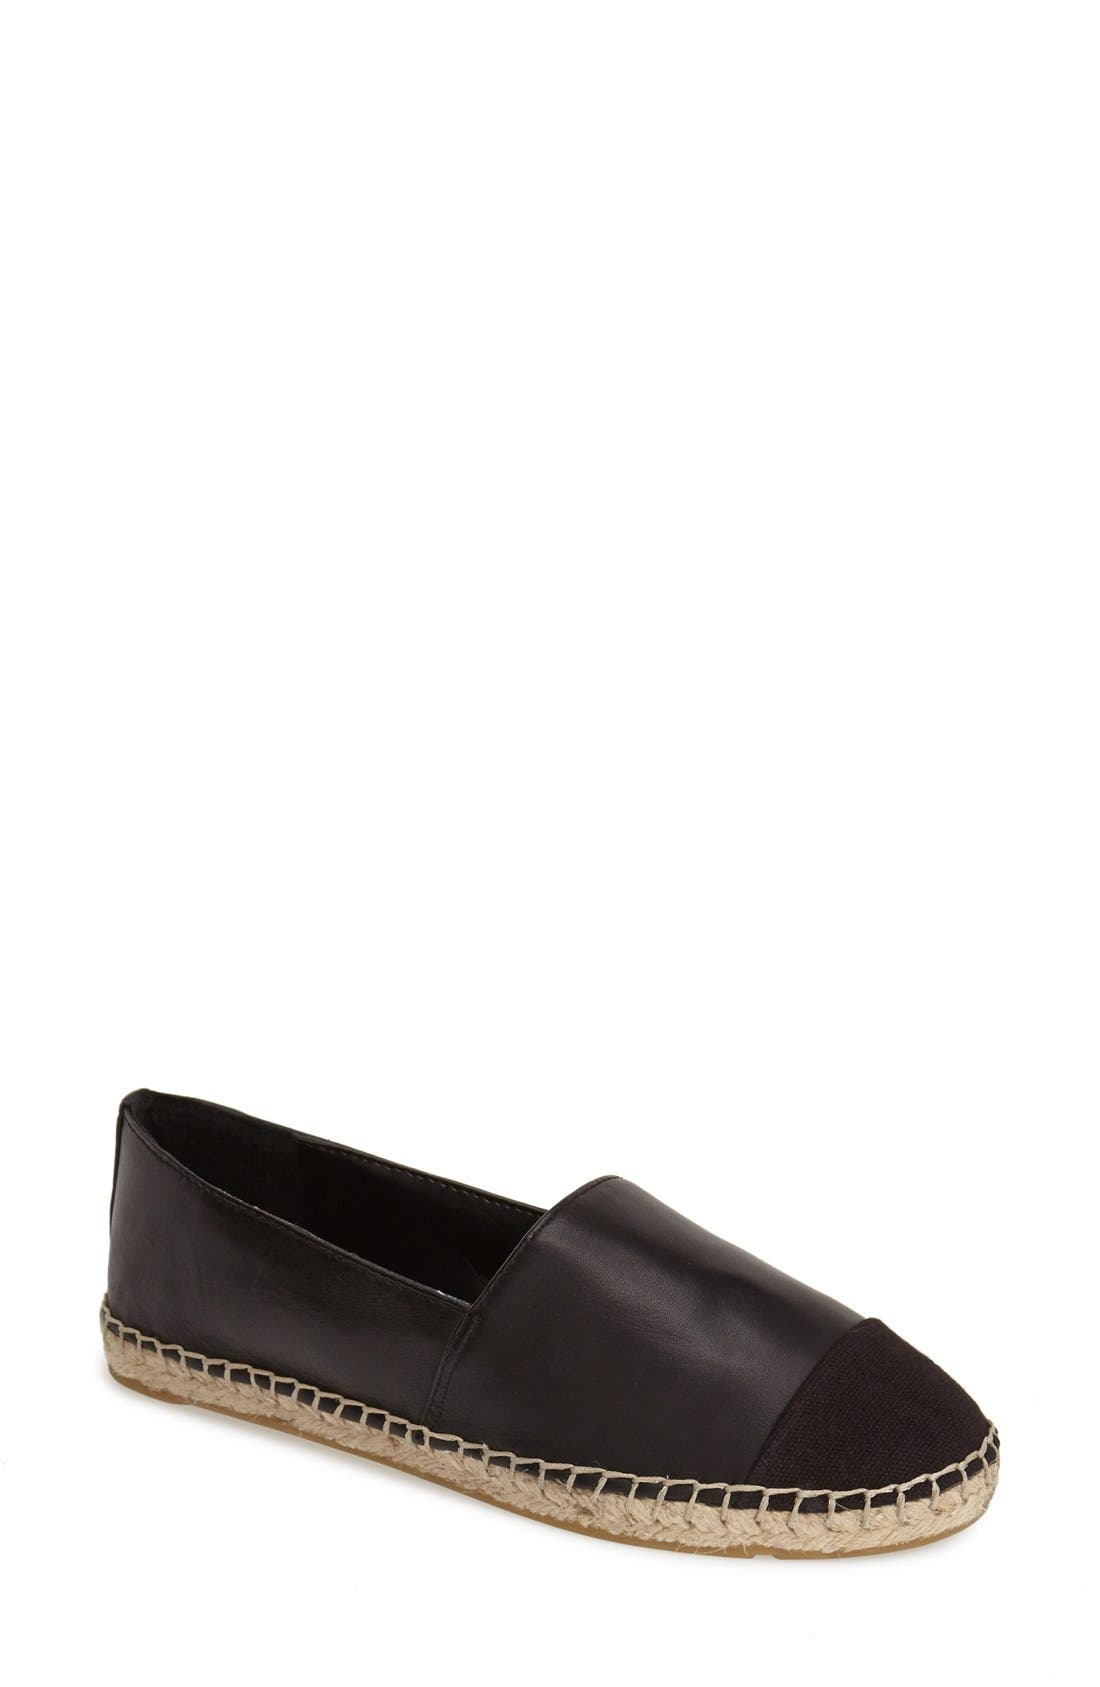 Main Image - Vince Camuto 'Dally' Leather Espadrille Flat (Women)